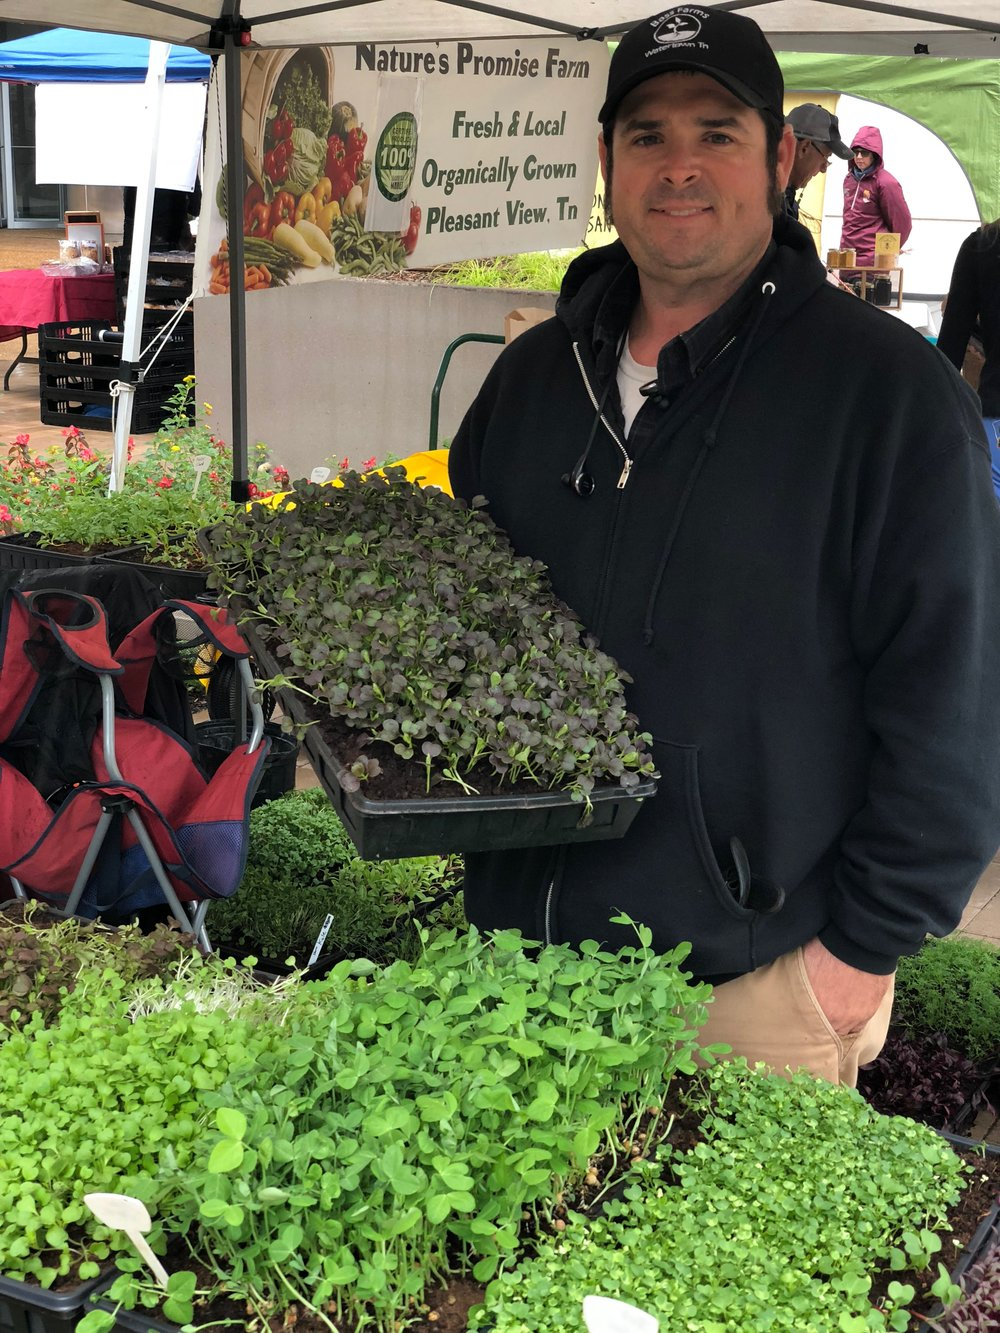 Matthew Bass and his microgreens can also be found at the NFM's Vanderbilt Neighborhood Market, which will pop up every Thursday in 2019 from June 6 to October 31.